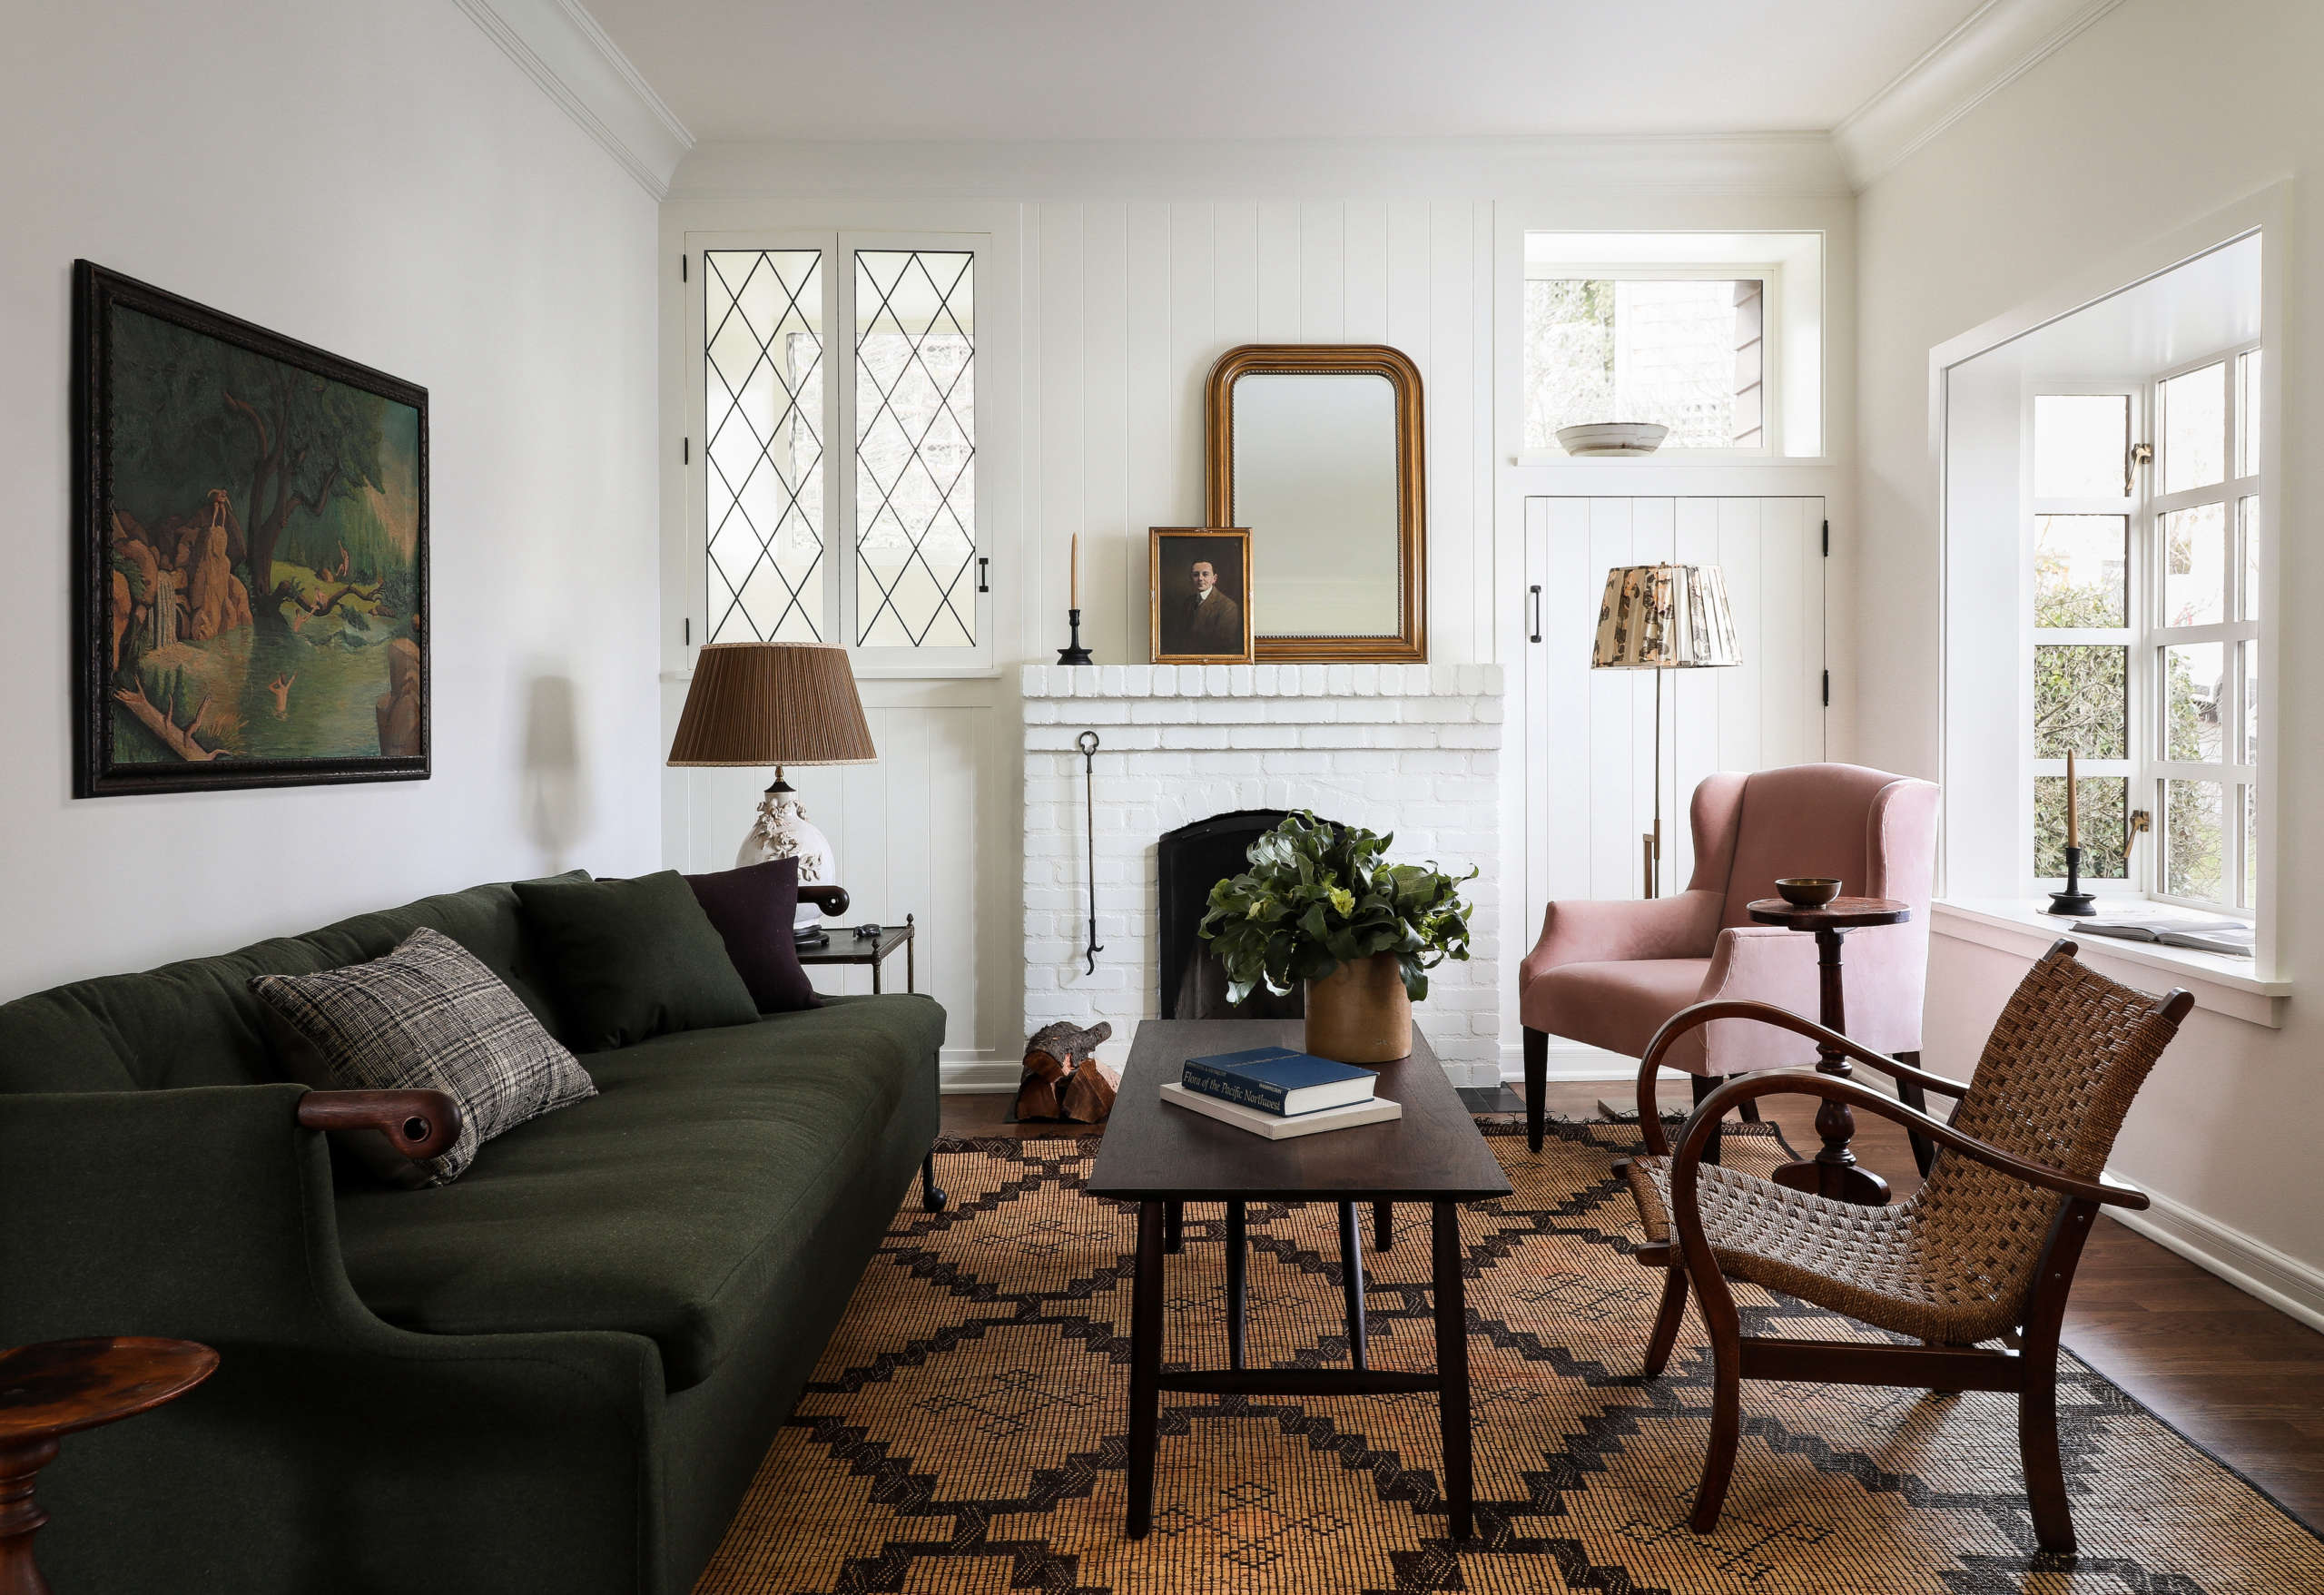 Small House Makeover: An English-Style New Look for a Couple's Longstanding Seattle Home